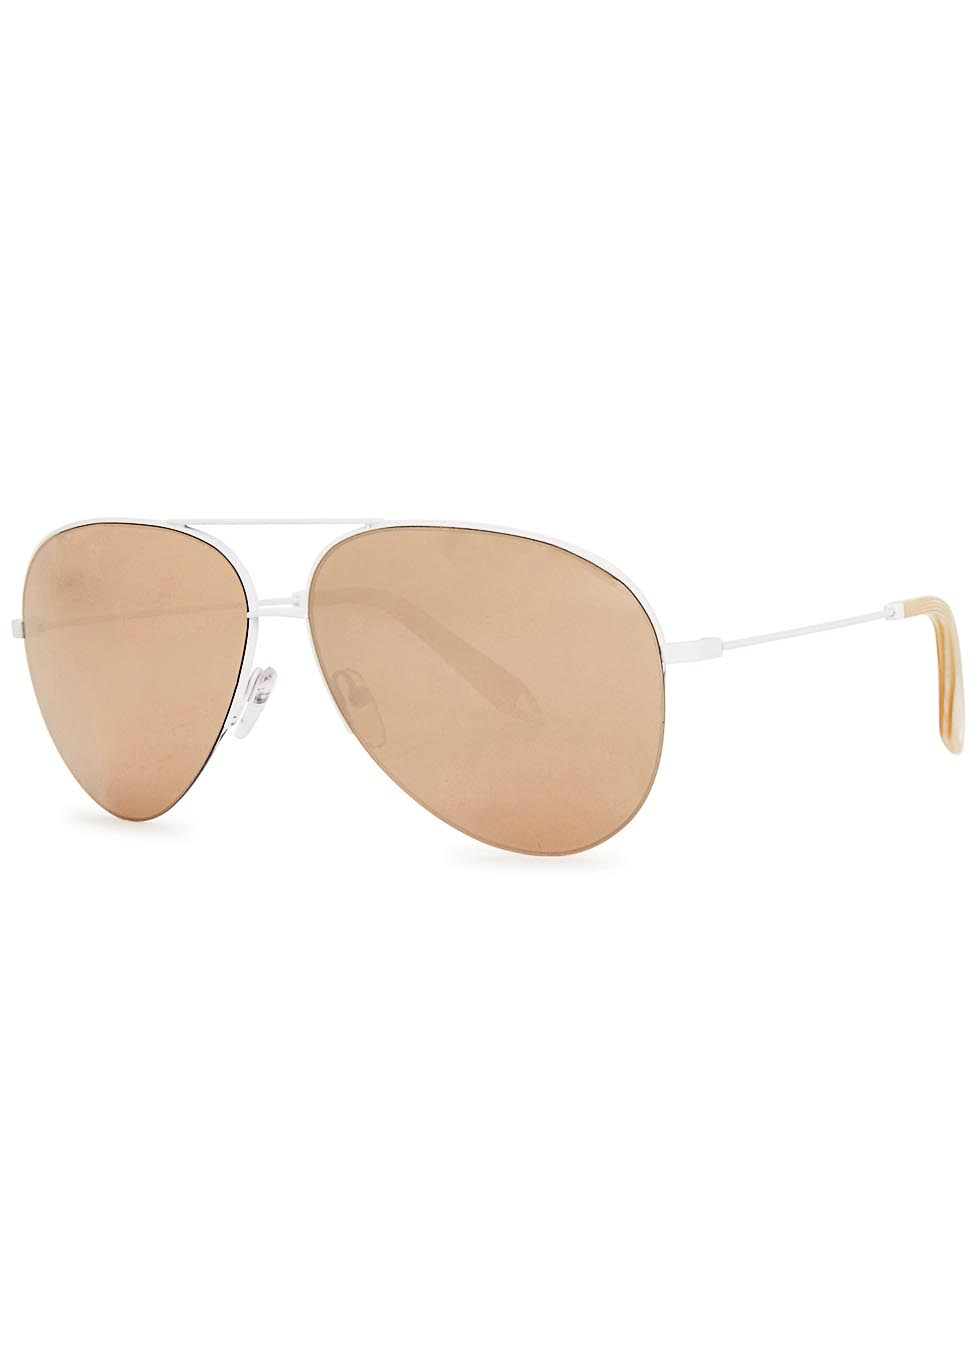 Classic Victoria 18kt gold-plated sunglasses - Victoria Beckham